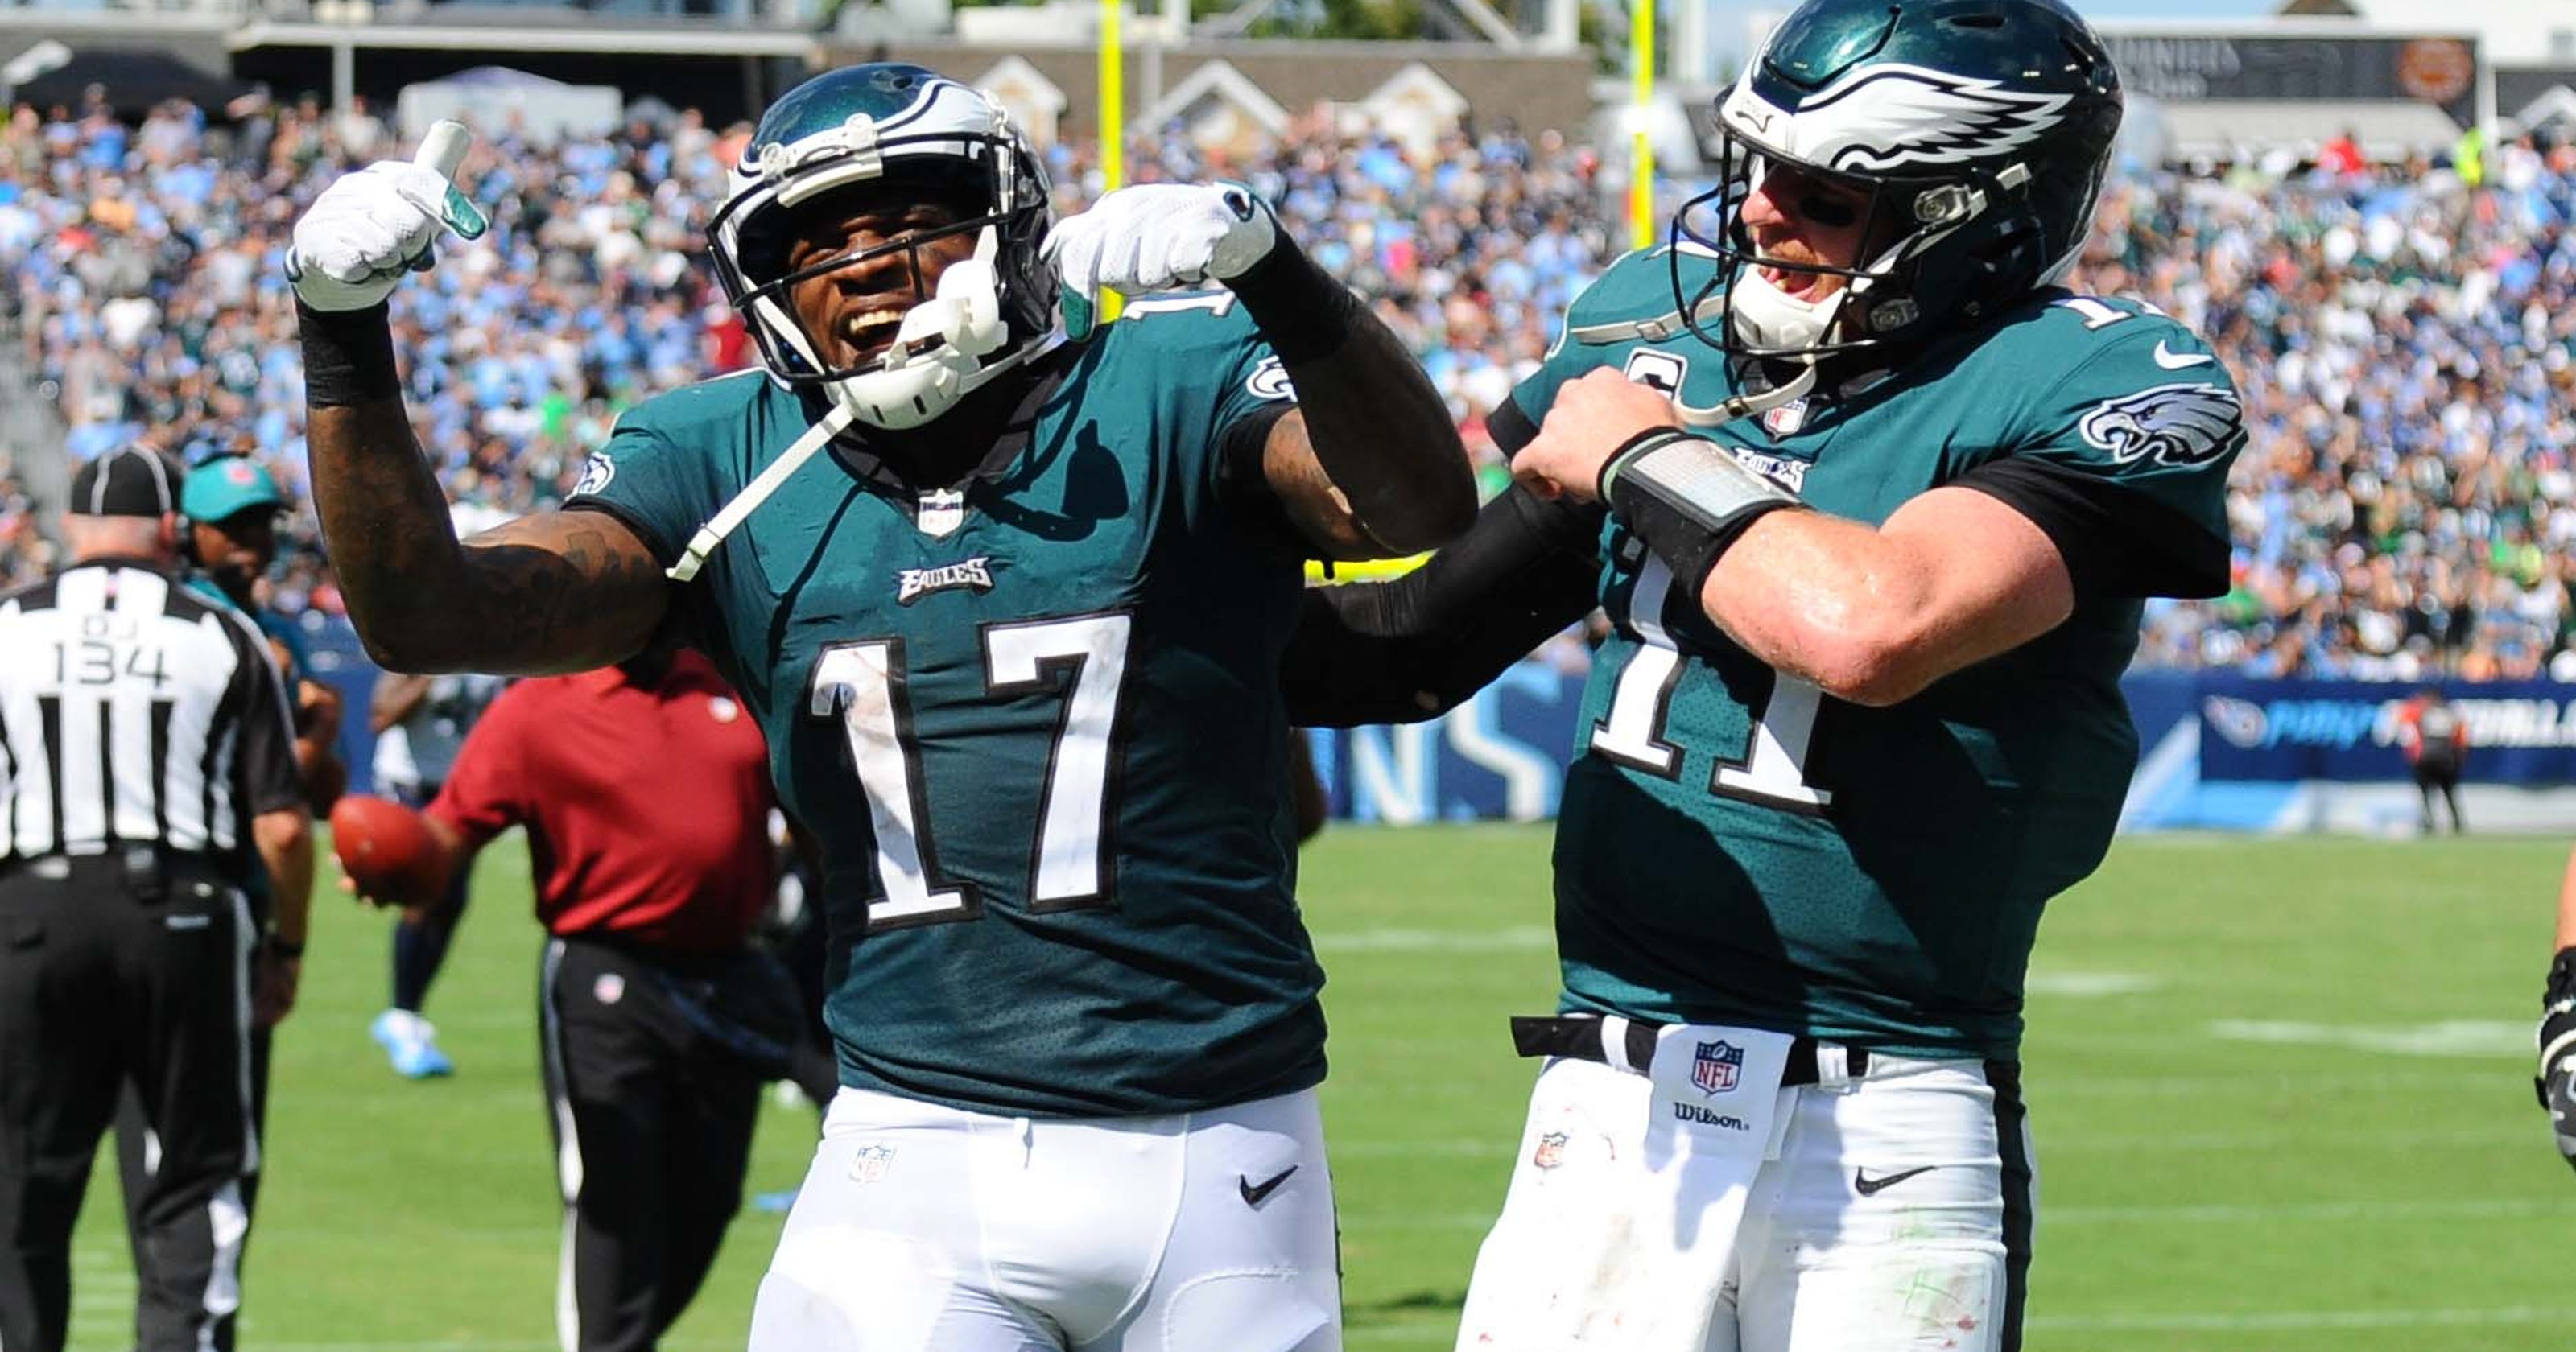 1b2d1f39318 Alshon Jeffery shines in return, but Eagles can't hold lead, fall to Titans  in OT